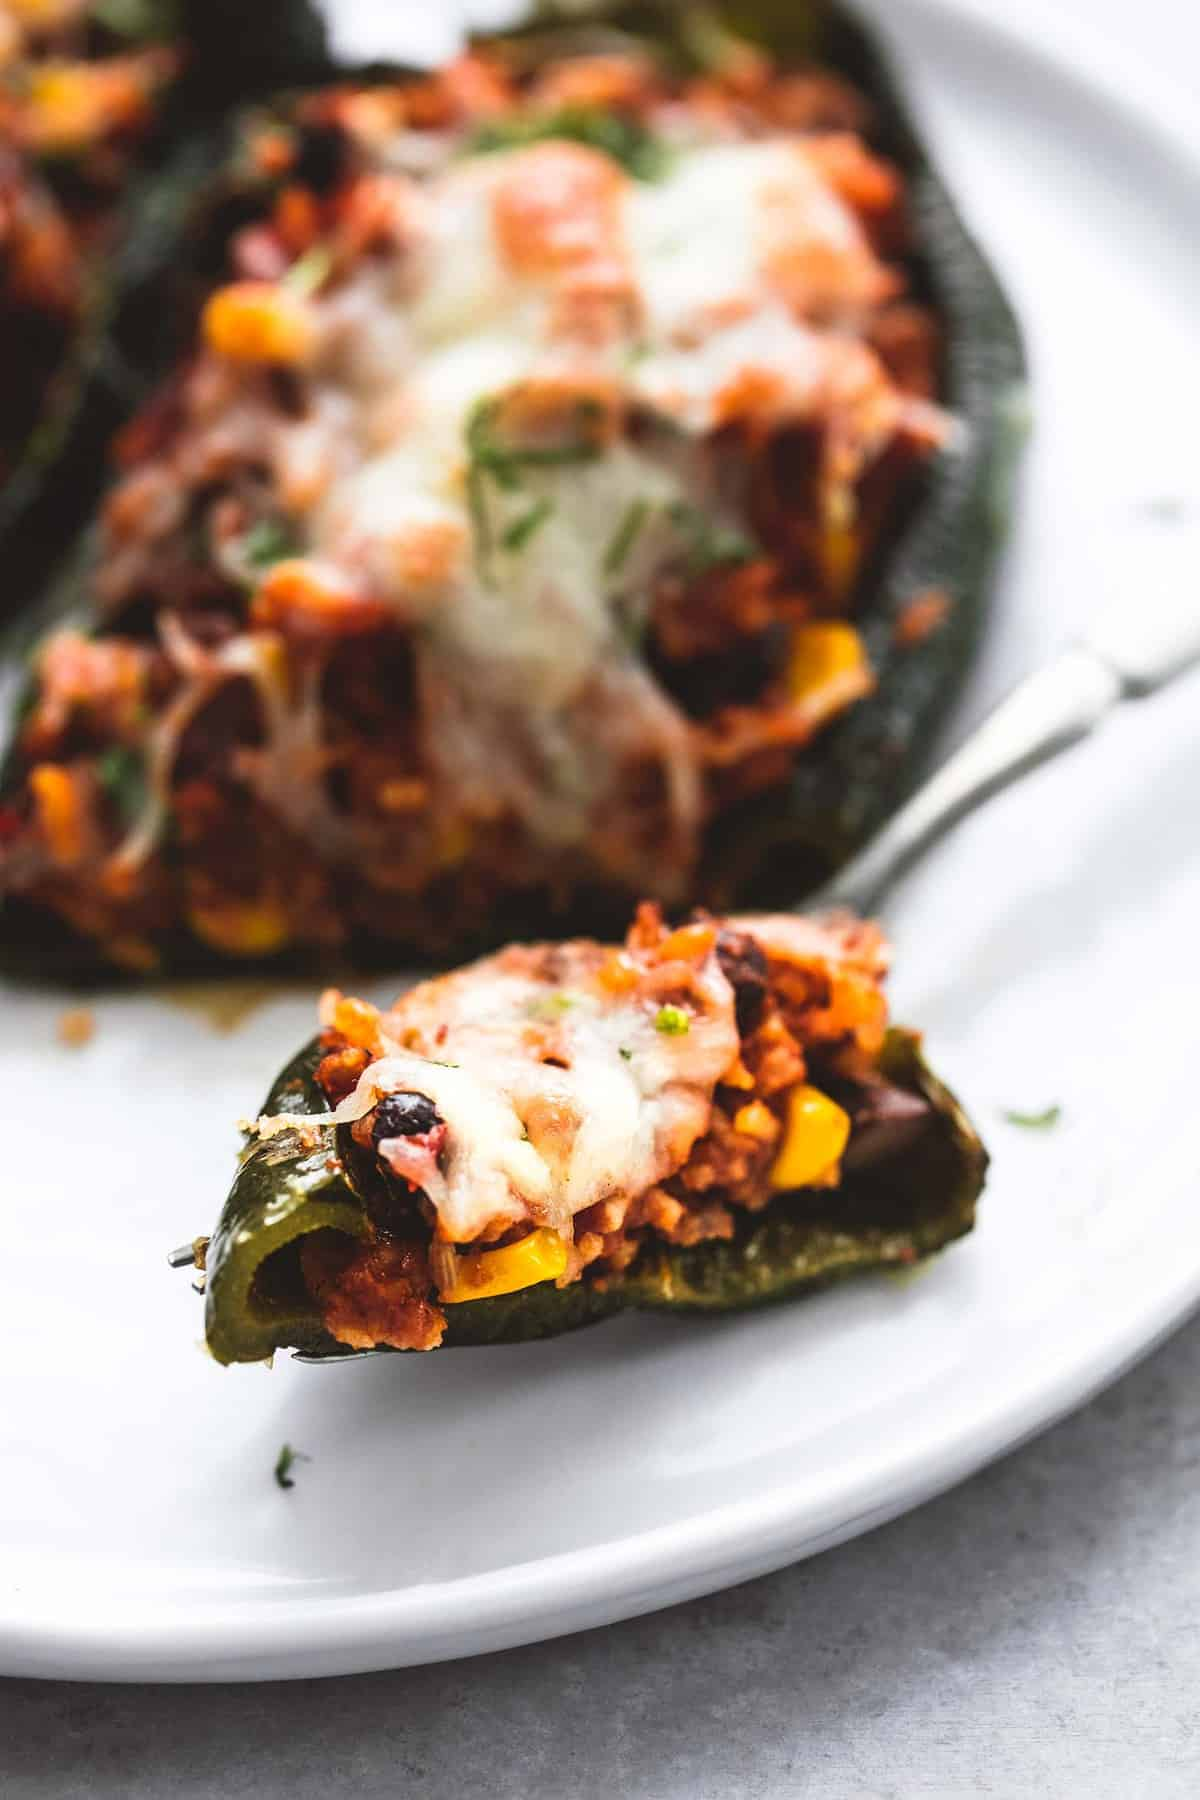 close up of a bite of Southwest stuffed poblano peppers on a fork with stuffed peppers in the background all on a plate.